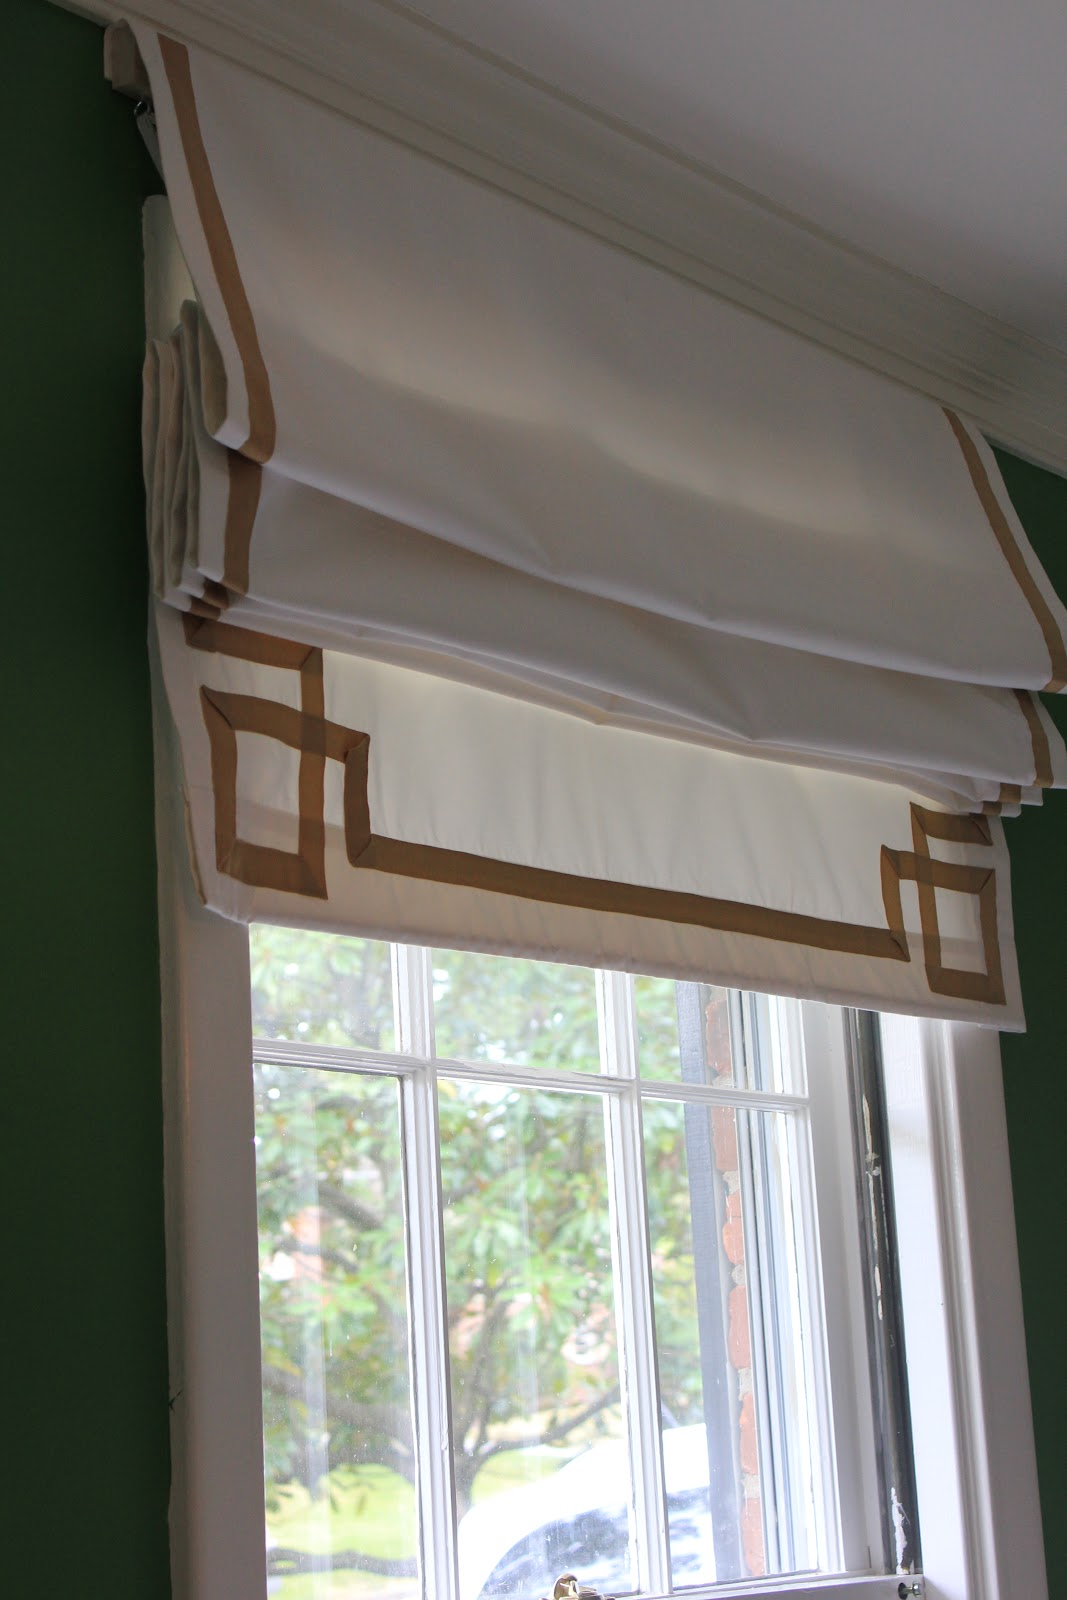 Westhampton Diy How To Make A Roman Shade From A Curtain